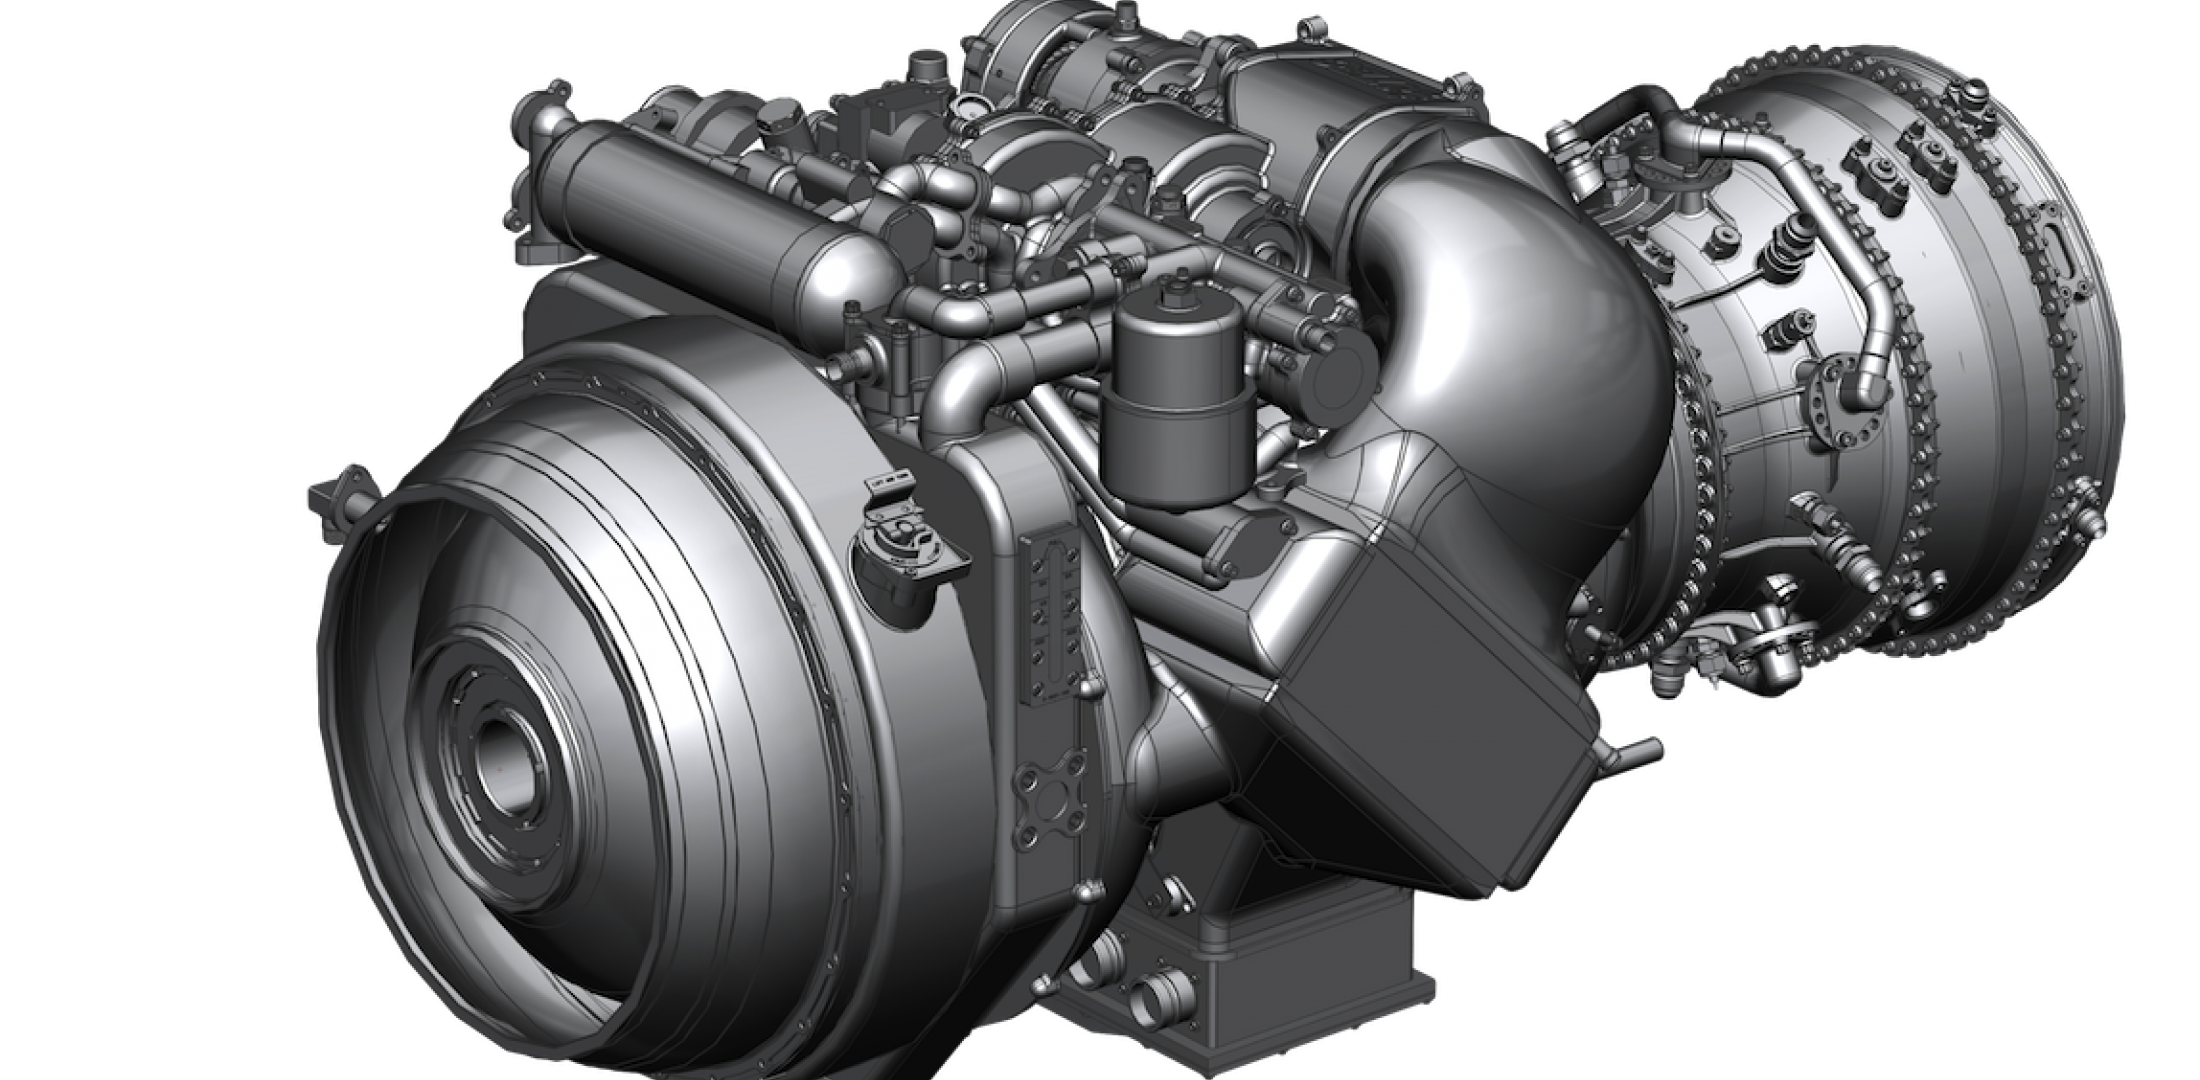 U S Army Awards Contracts for Turbine Engine Design